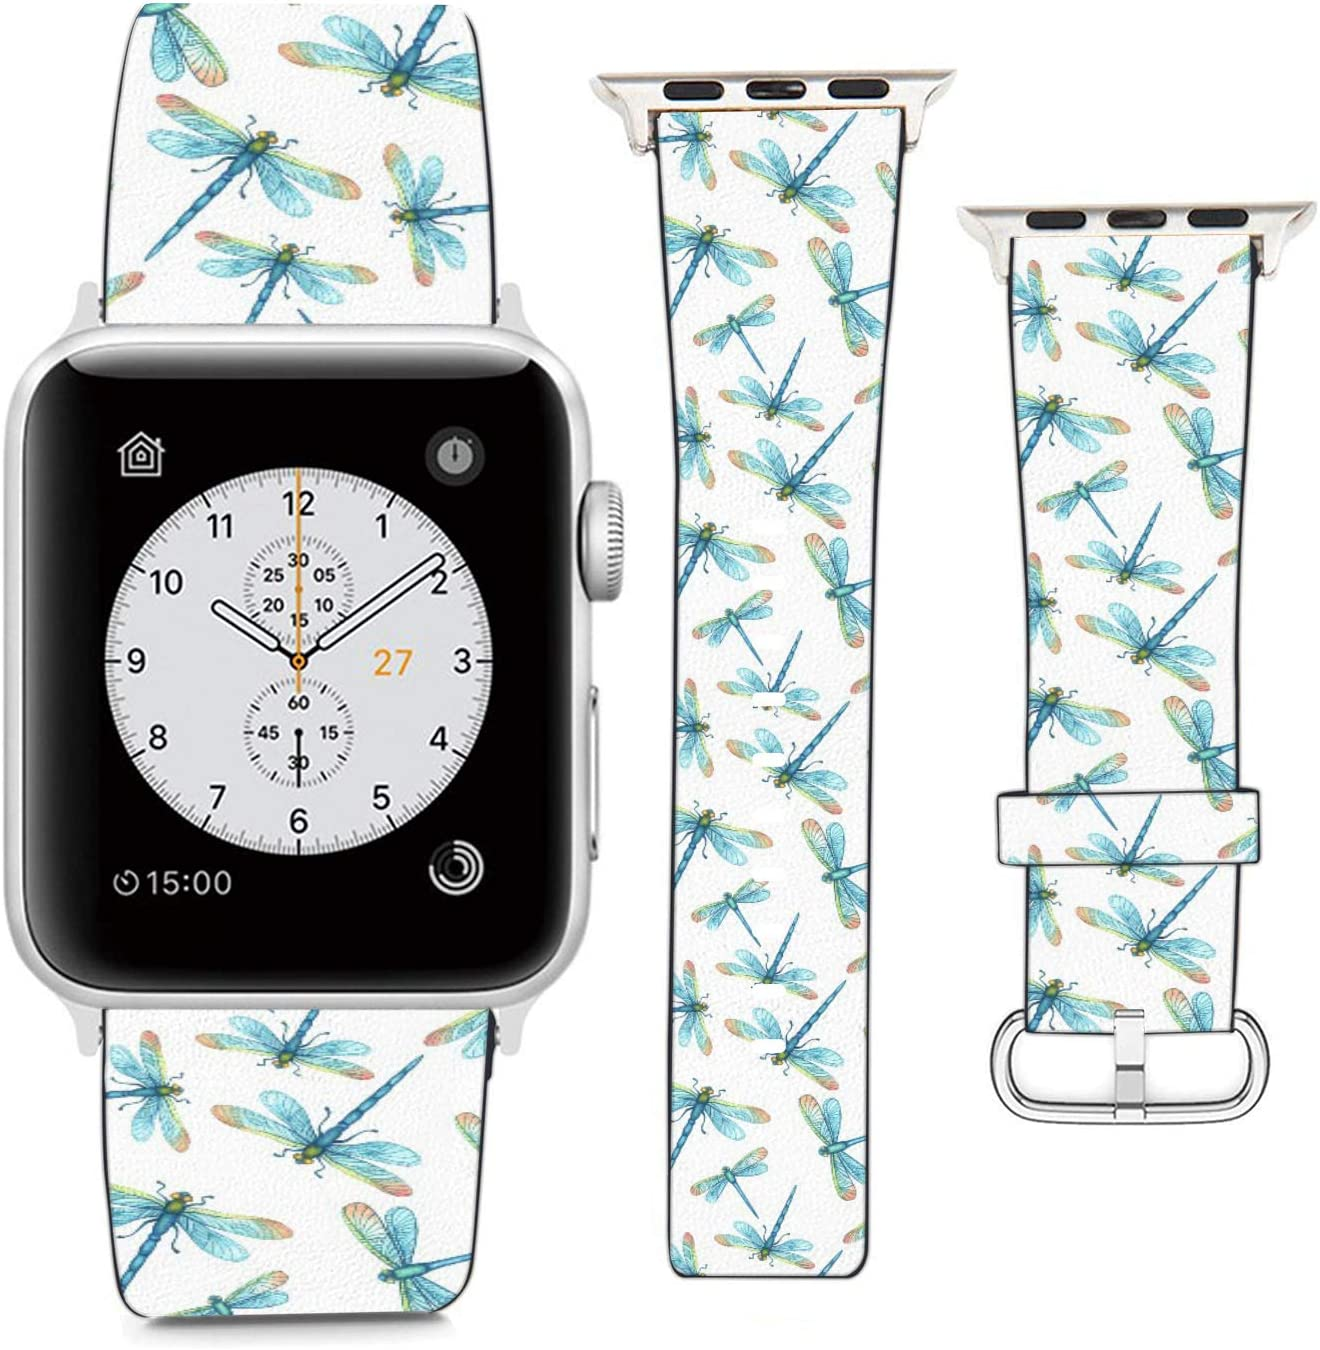 Compatible with Apple Watch Wristband 38mm 40mm, (Dragonflies Pattern) PU Leather Band Replacement Strap for iWatch Series 5 4 3 2 1